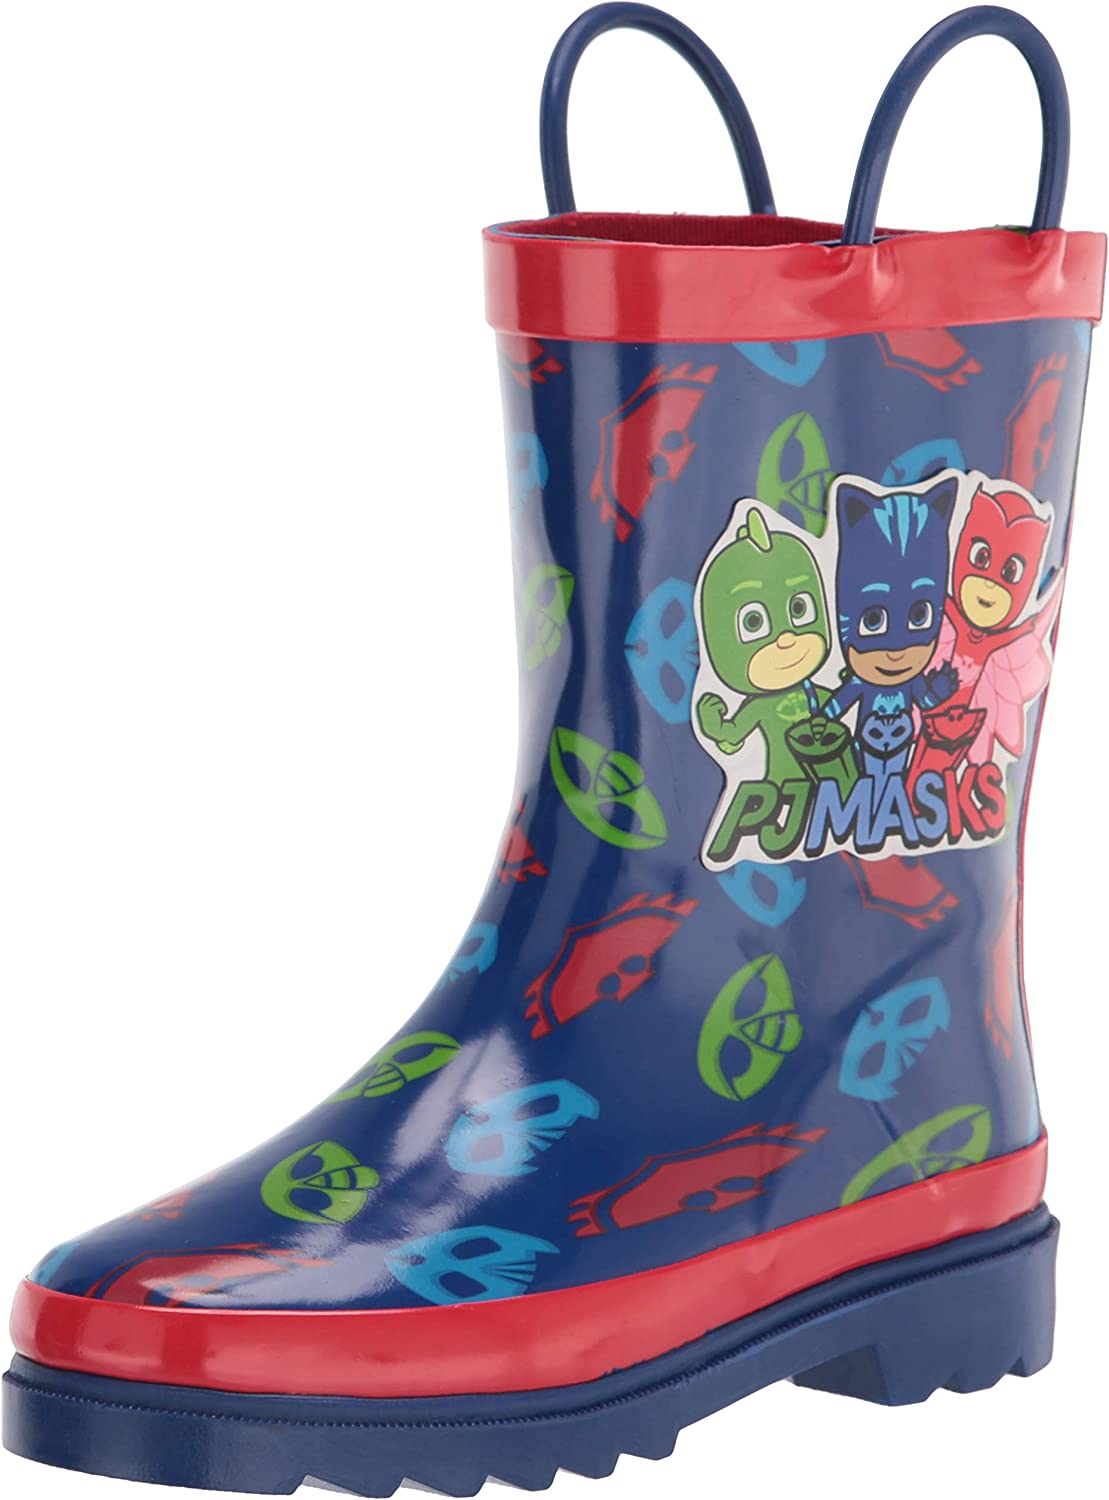 PJMASKS boys Rain Max 88% Sale special price OFF Boots